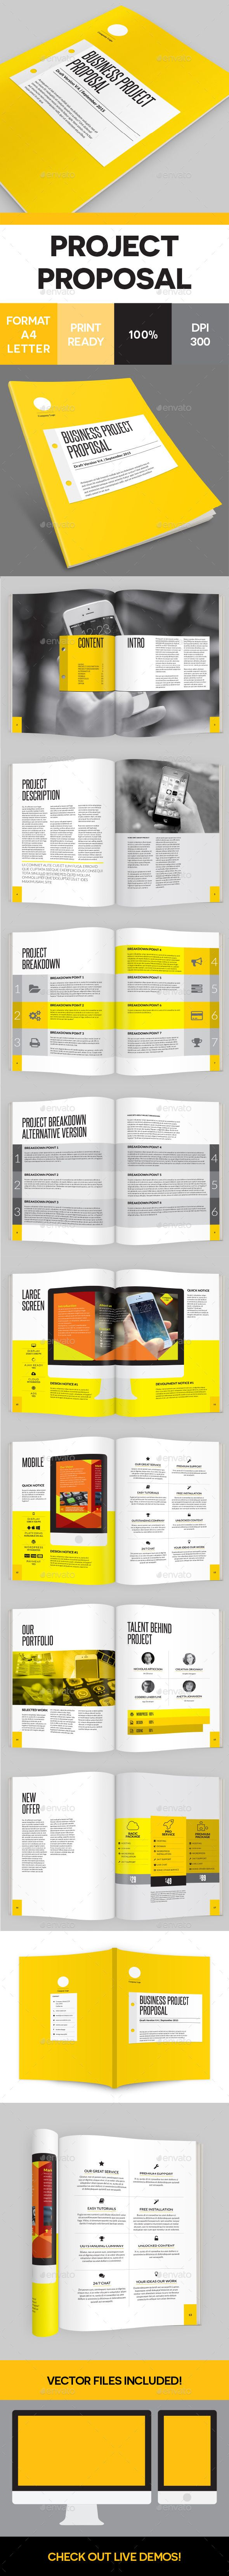 agency proposal template%0A Project Proposal